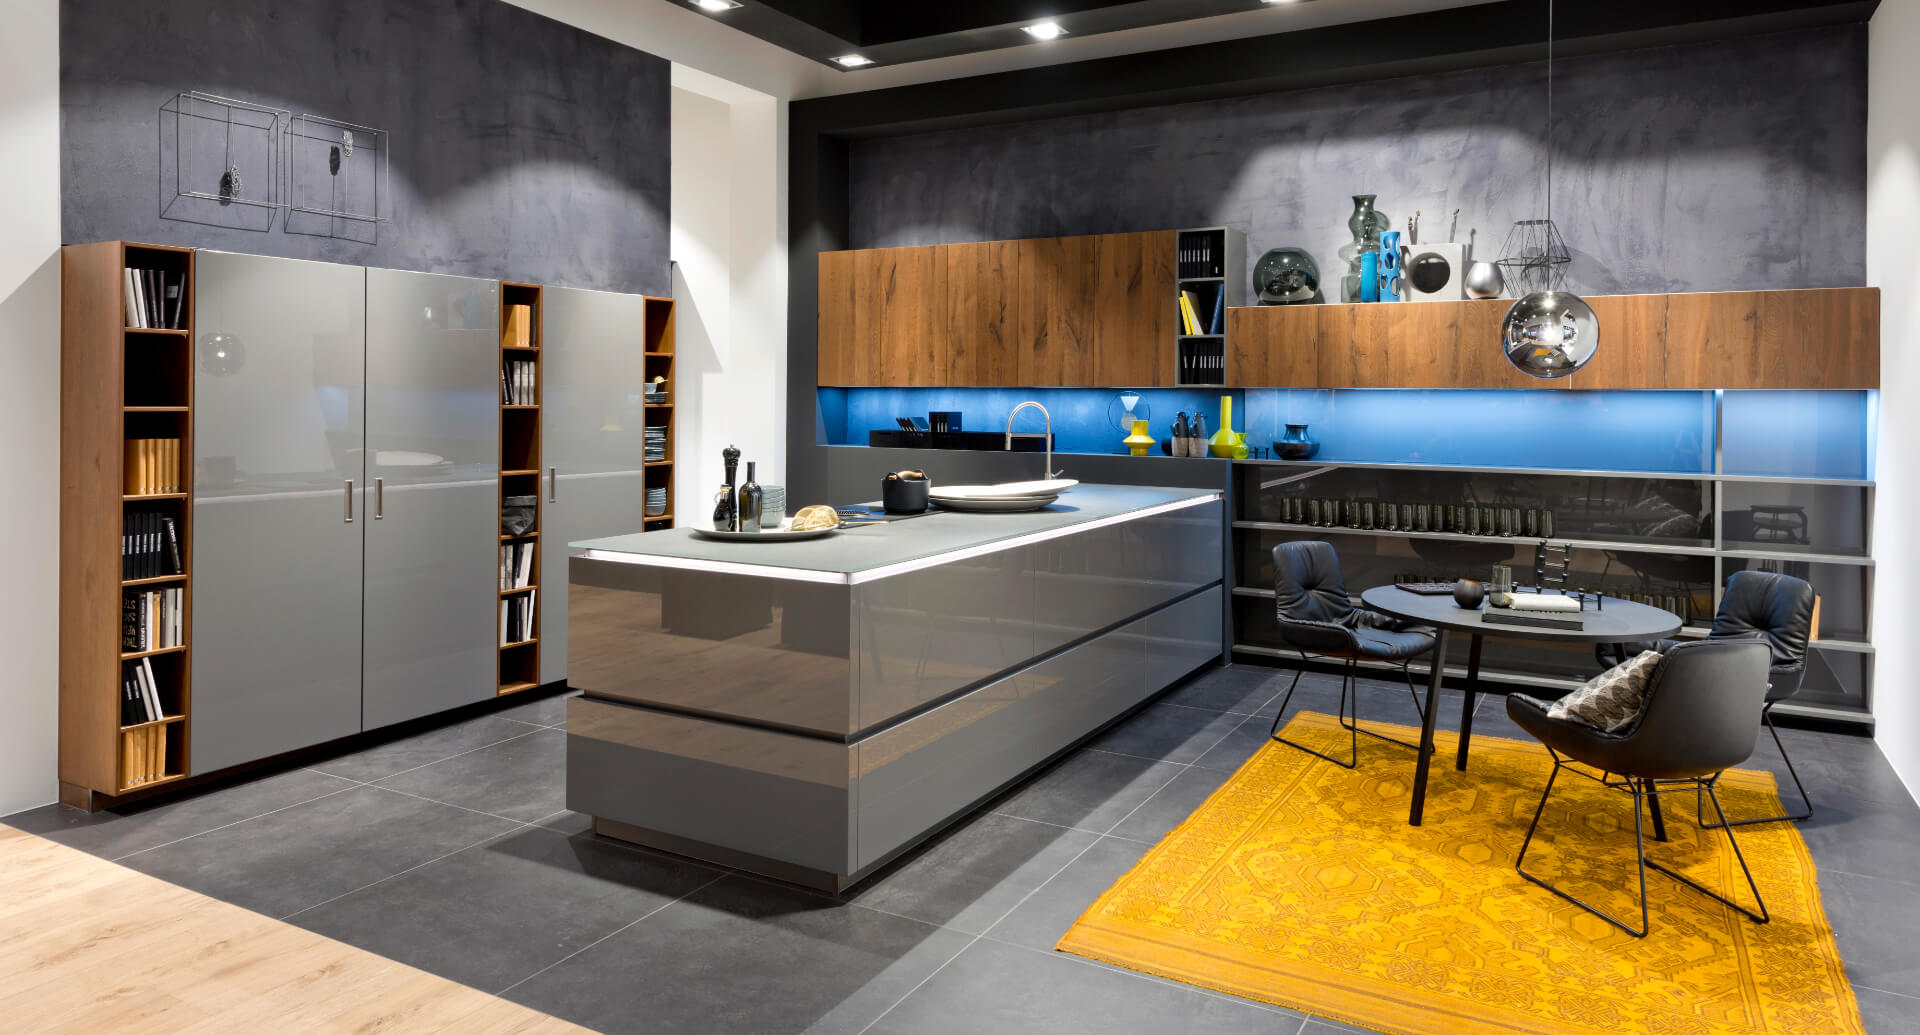 Nolte Nova Lack Black Kitchen